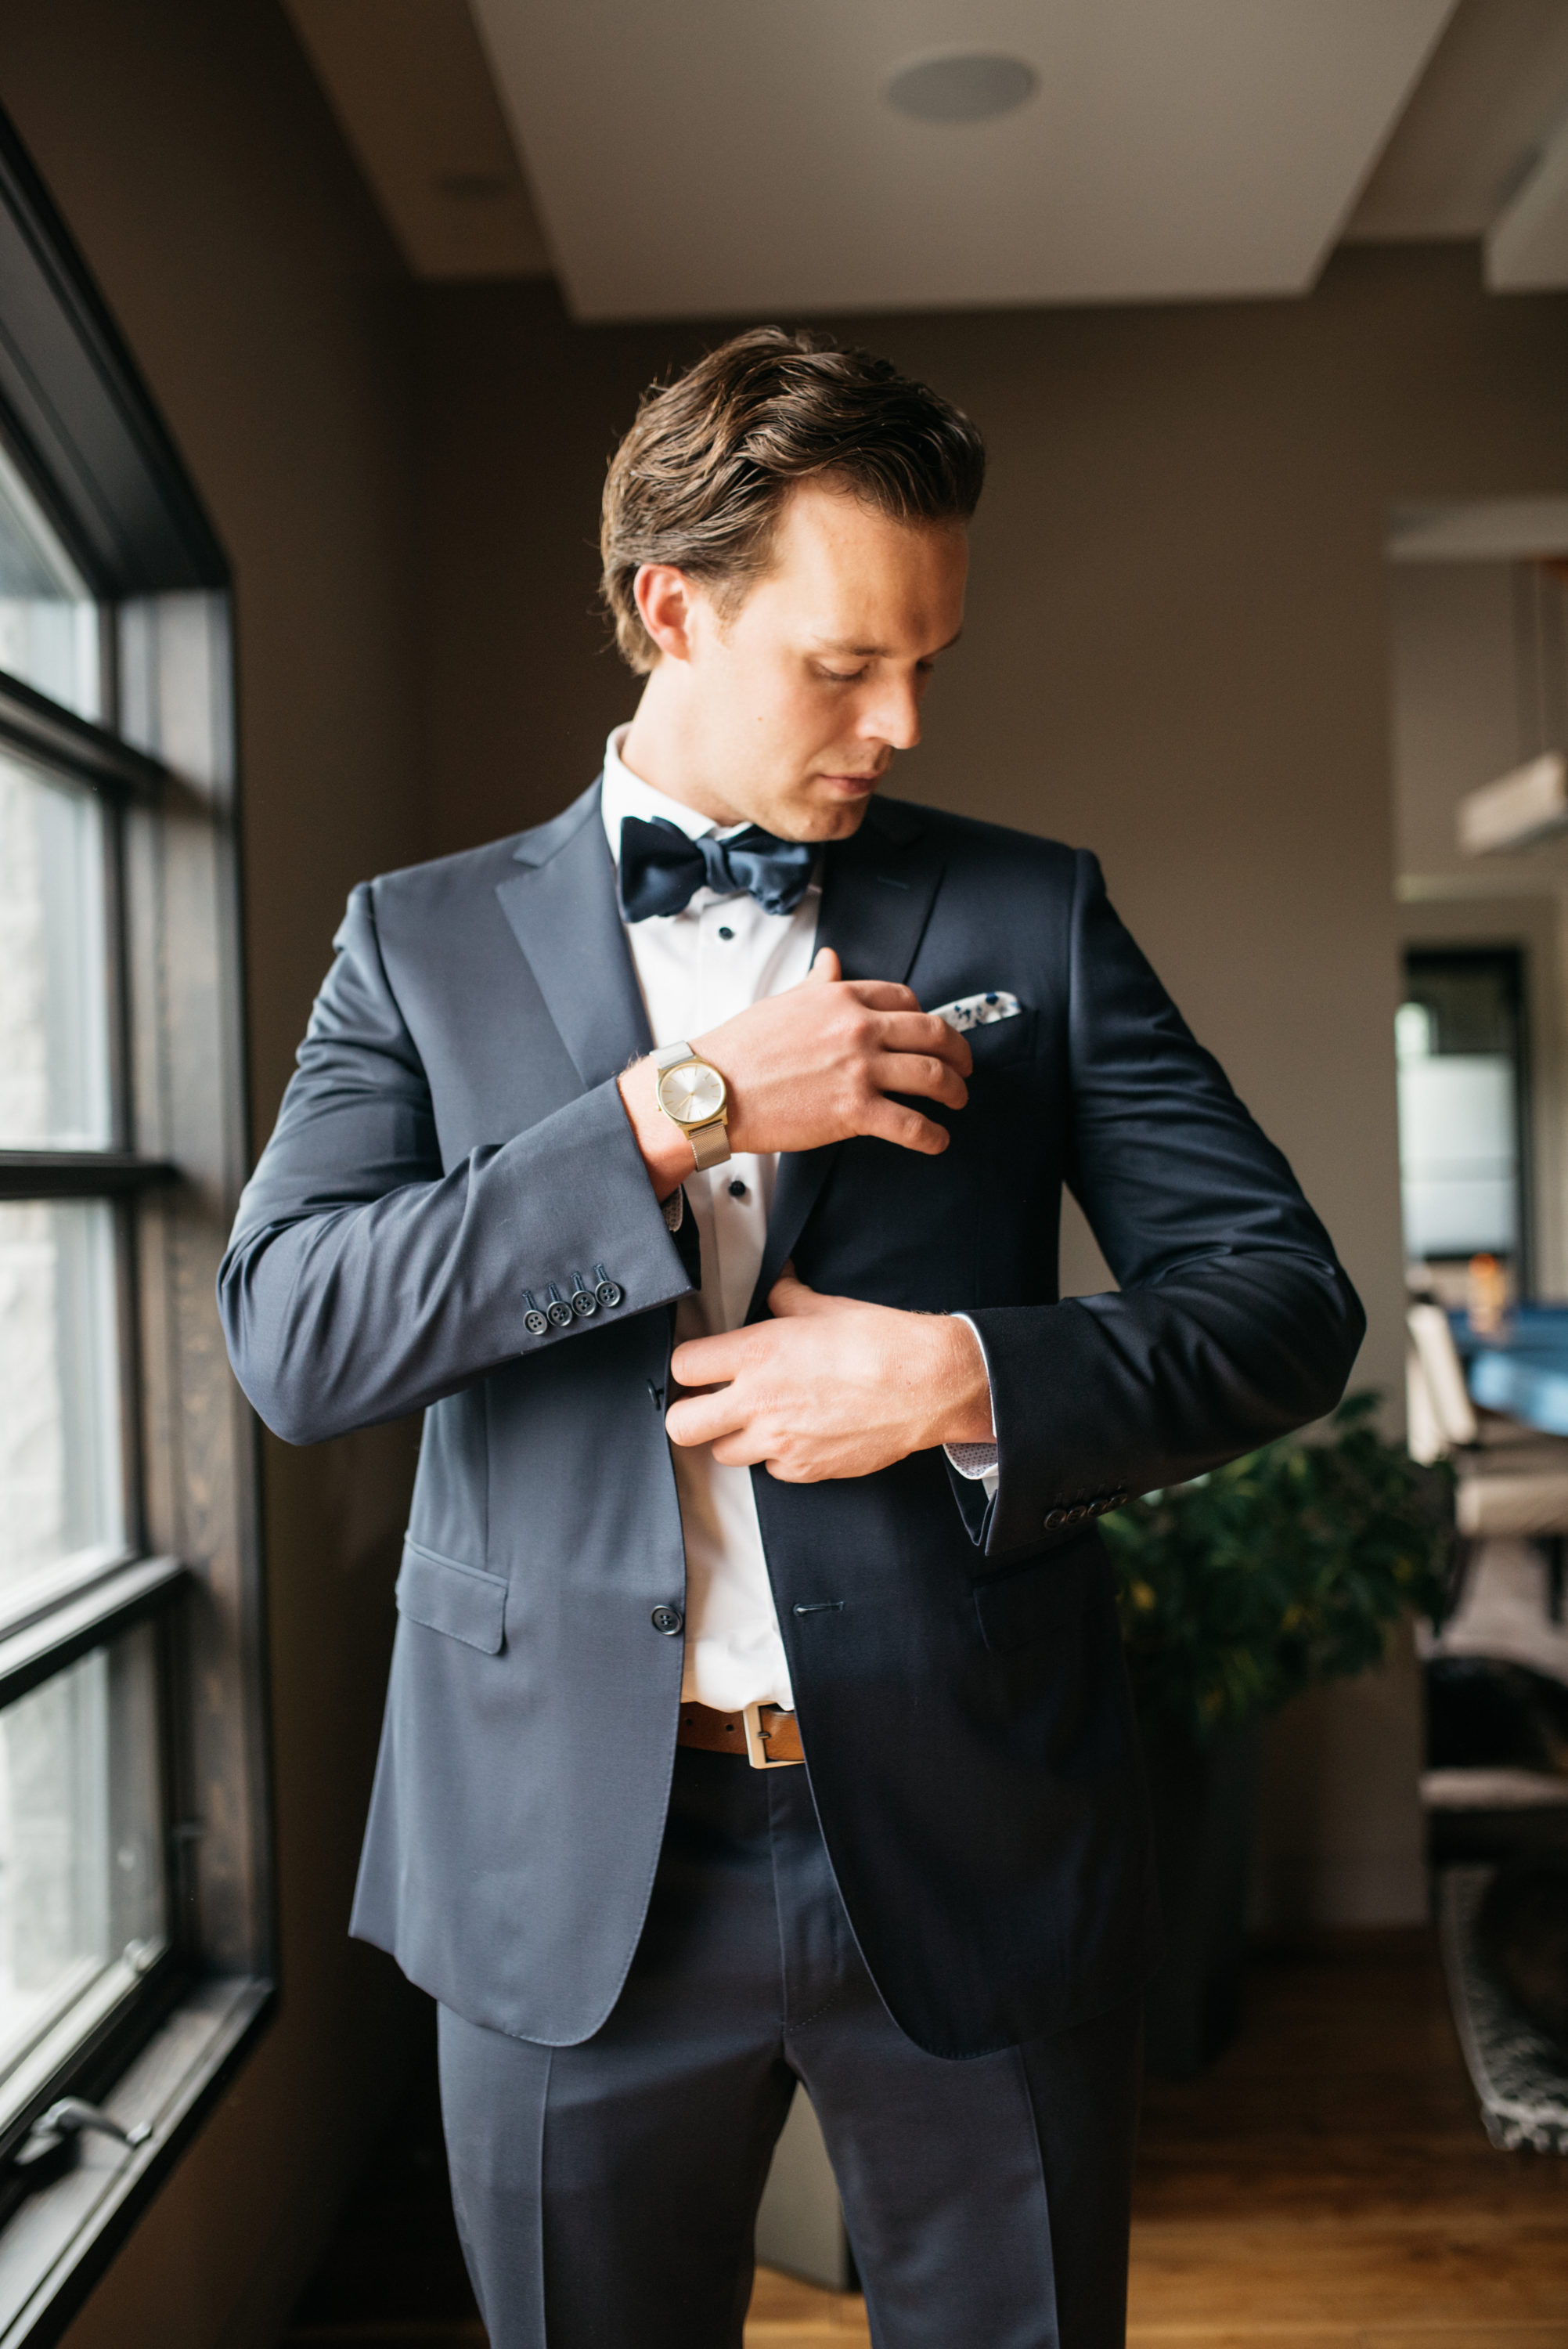 Groom putting his pocket square on